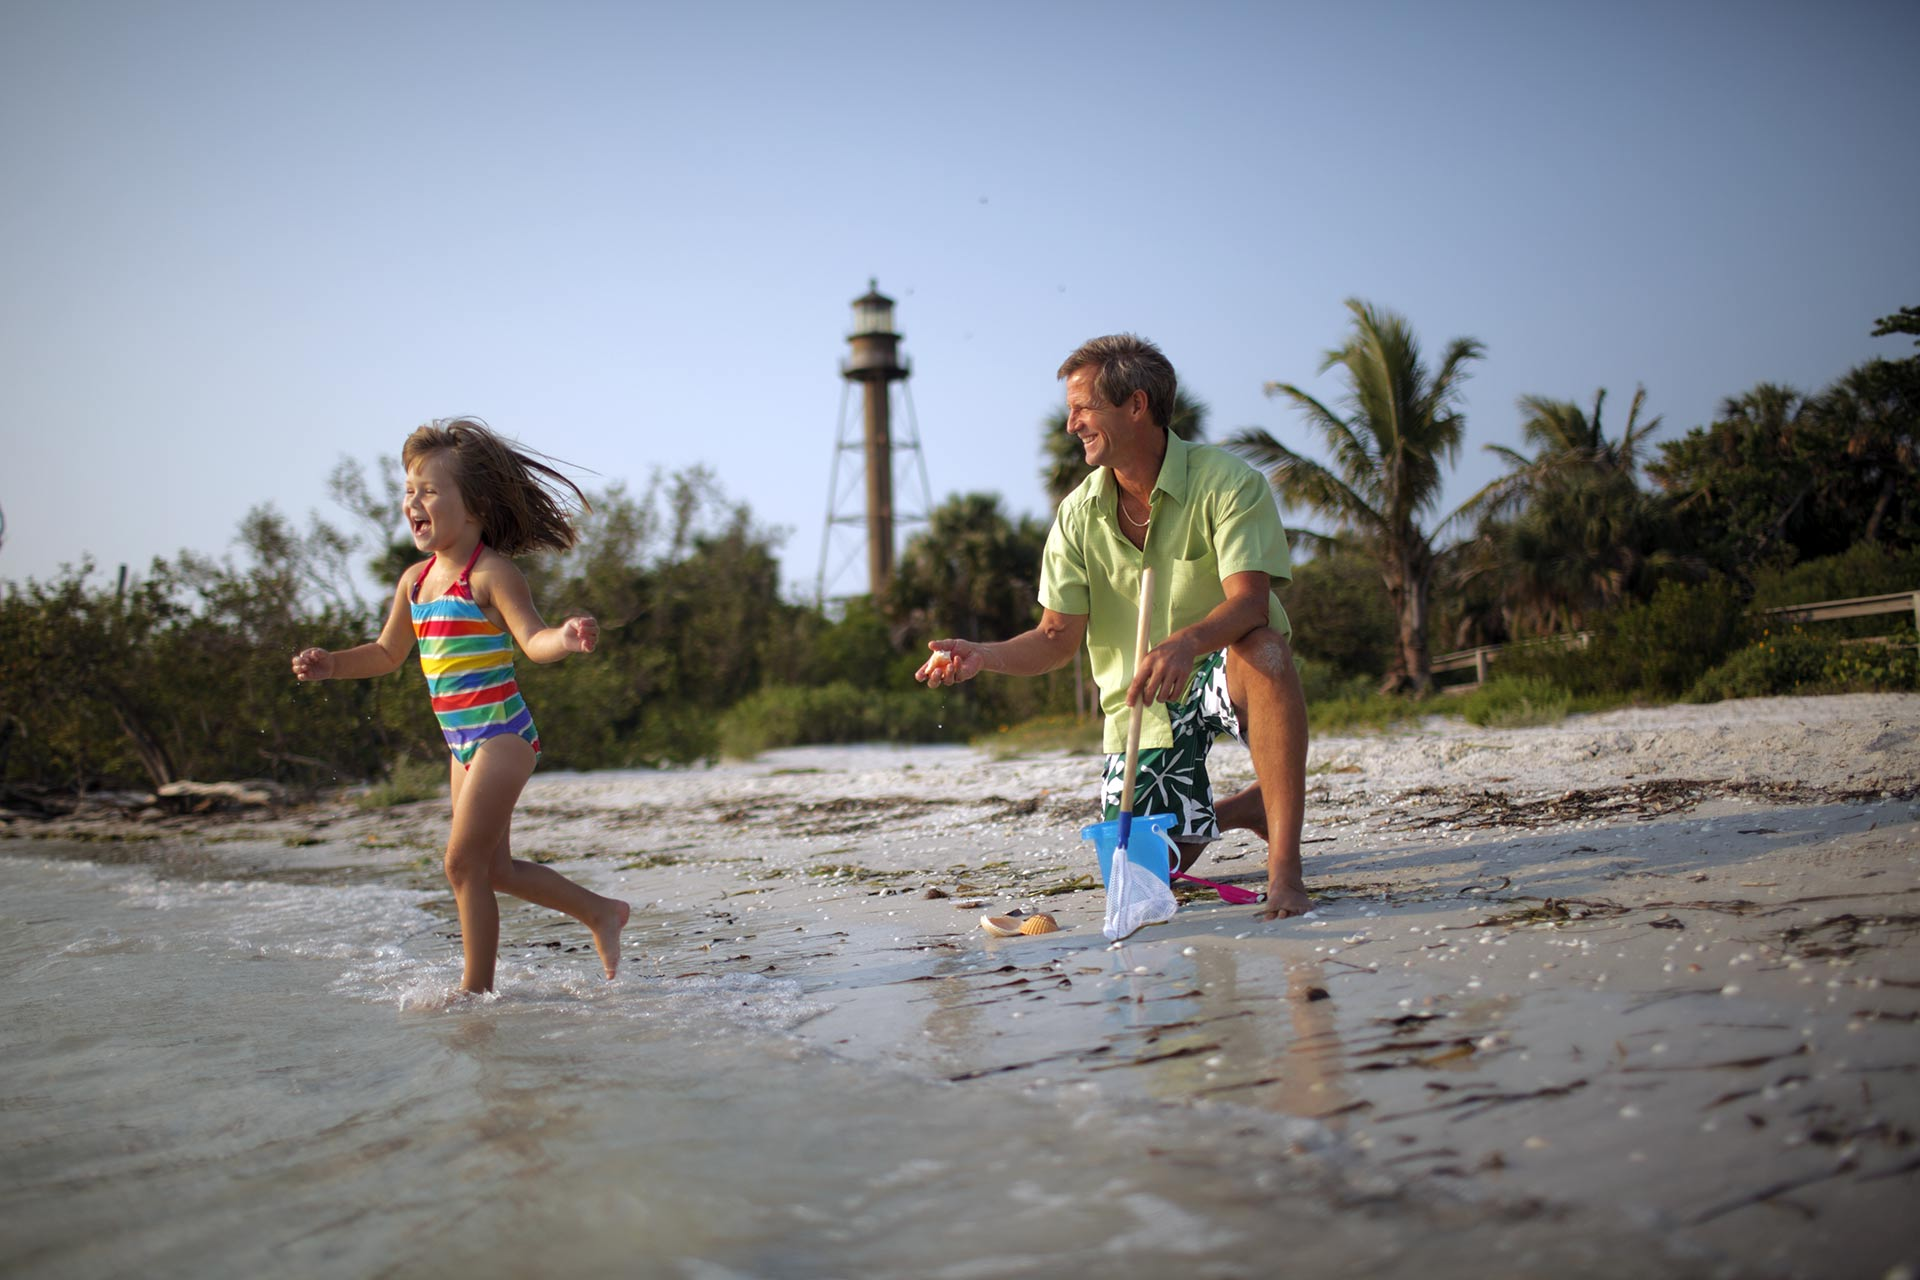 A little girl and her father playing on the beach on Sanibel Island, Florida.